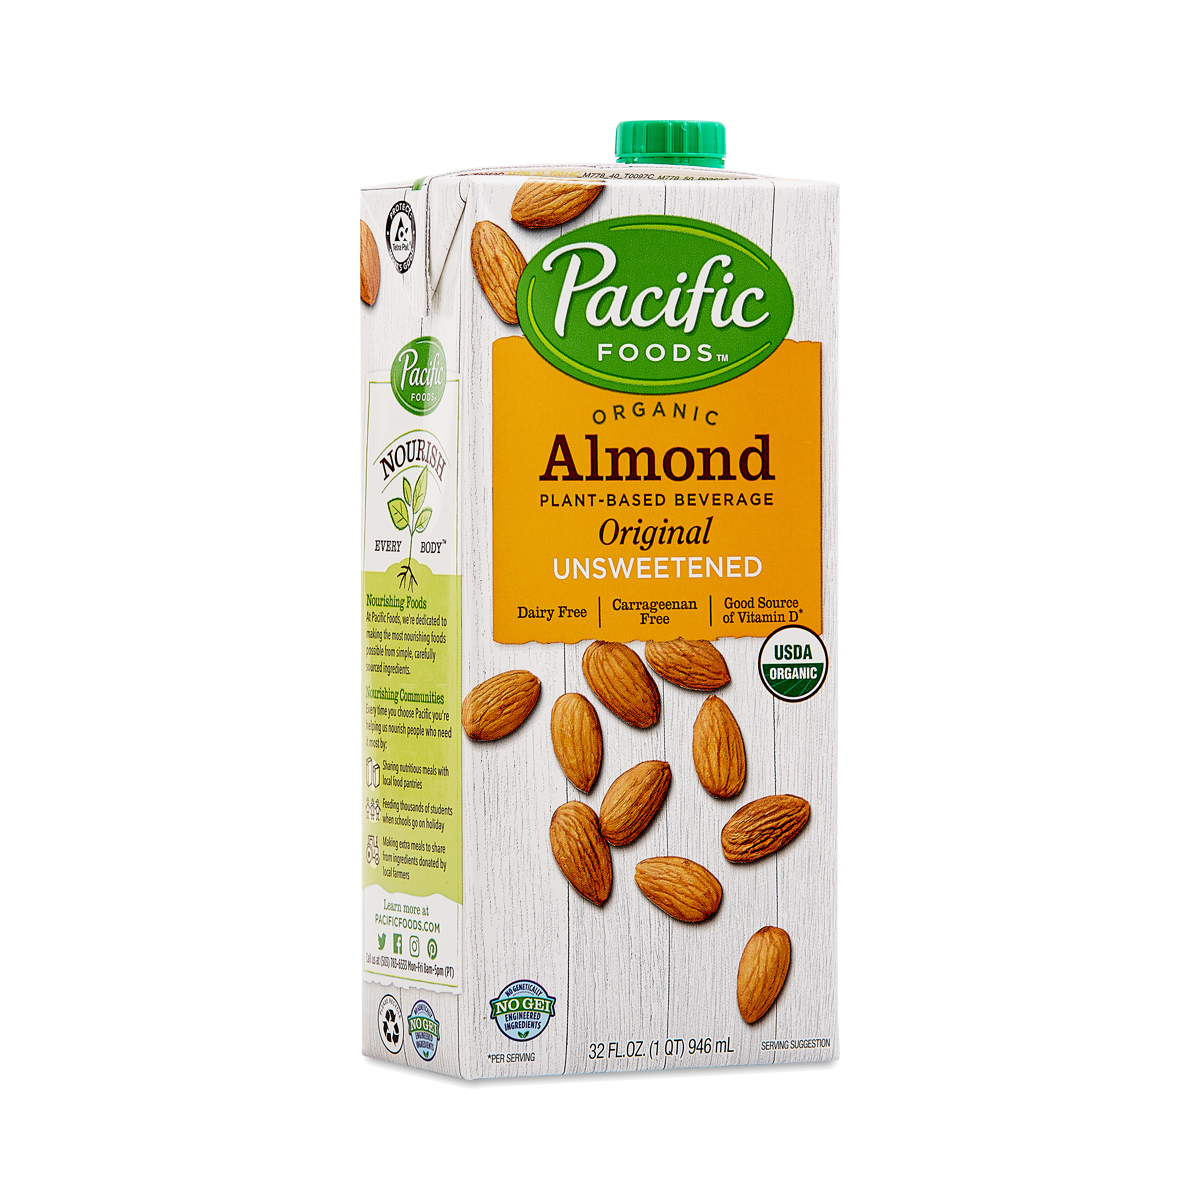 Pacific Foods Organic Almond Beverage, Unsweetened Original 32 fl oz carton